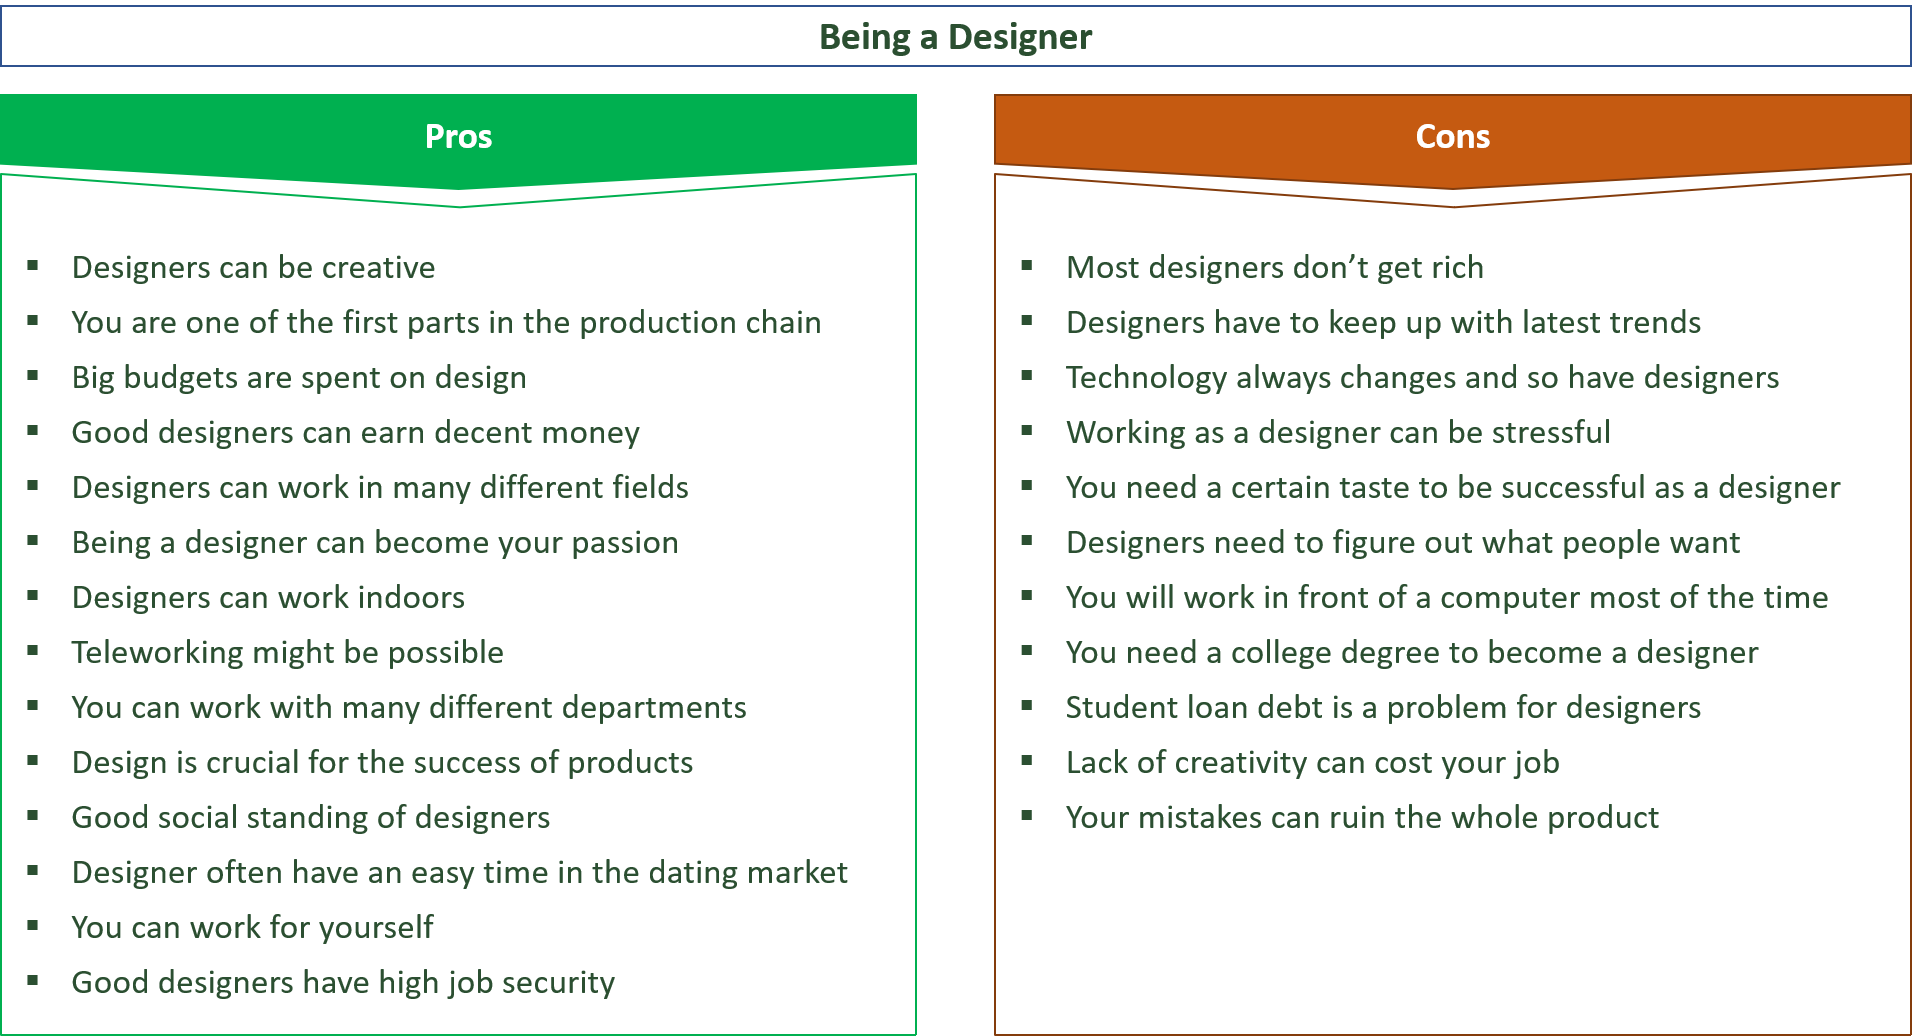 advantages and disadvantages of being a designer